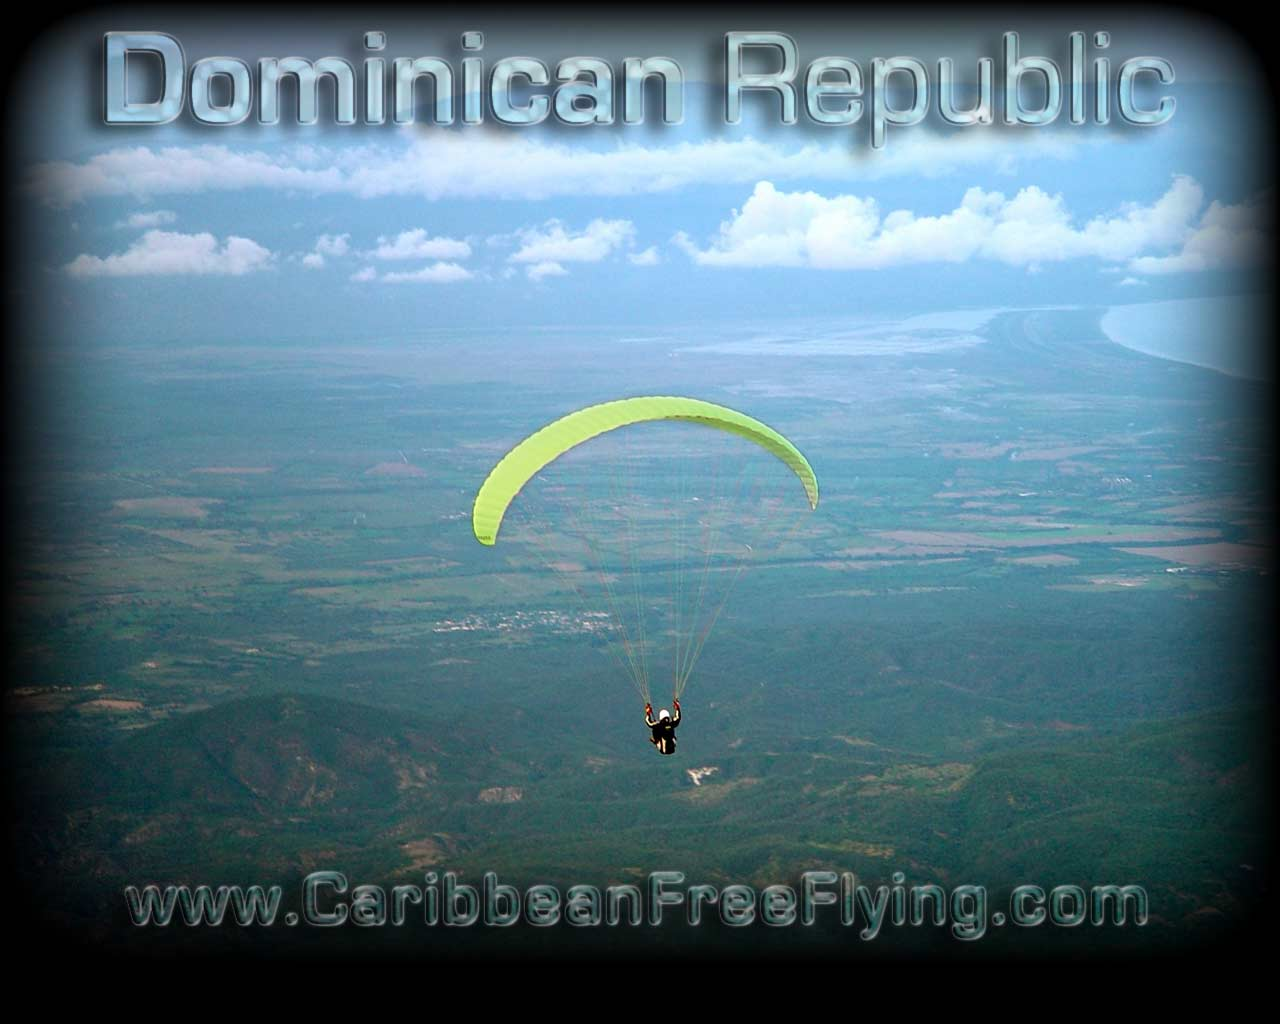 Gliding out from La Hoz, Barahona